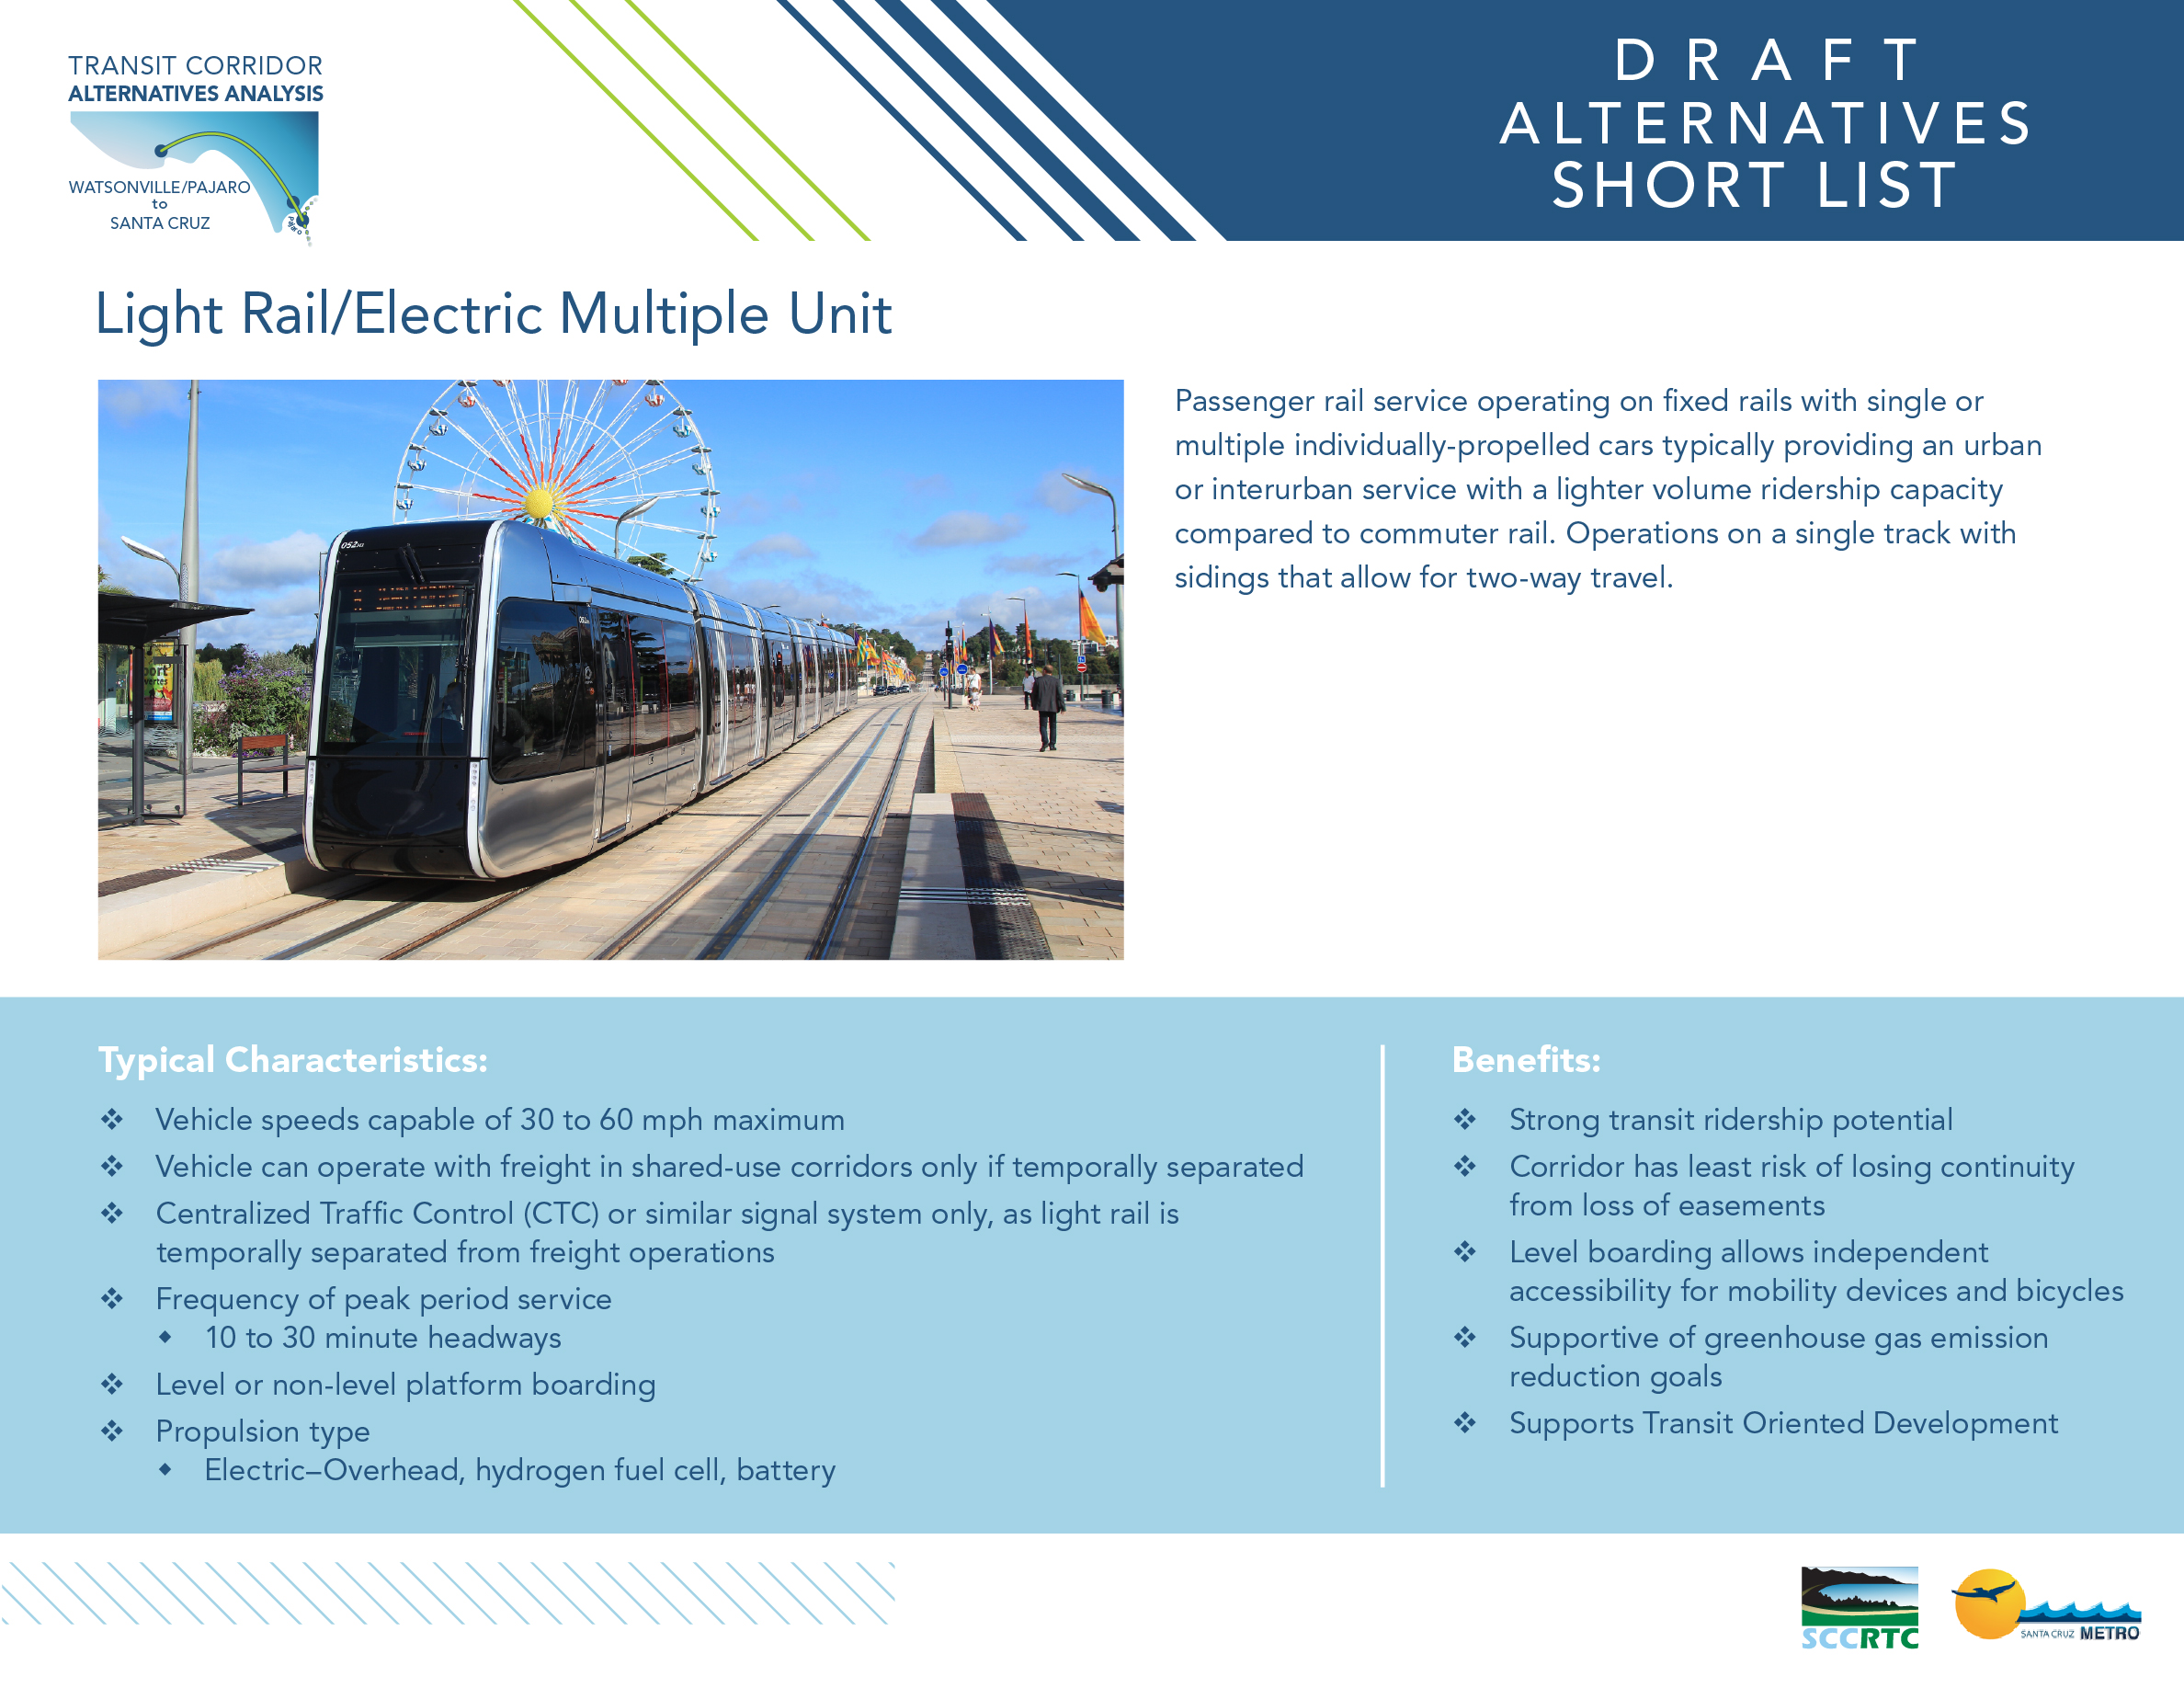 Board 3: Draft Alternatives – Short List Light Rail / Electric Multiple Unit Passenger rail service operating on _xed rails with single or multiple individually-propelled cars typically providing an urban or interurban service with a lighter volume ridership capacity compared to commuter rail. Operations on a single track with sidings that allow for two-way travel. Typical Characteristics: • Vehicle speeds capable of 30 to 60 mph maximum • Vehicle can operate with freight in shared-use corridors only if temporally separate • Centralized Traffic Control (CTC) or similar signal system only, as light rail is temporally separated from freight operations • Frequency of peak period service • 10 to 30 minute headways • Level or non-level platform boarding • Propulsion type • Electric–Overhead, hydrogen fuel cell, battery Benefits: • Strong transit ridership potential • Corridor has least risk of losing continuity from loss of easements • Level boarding allows independent accessibility for mobility devices and bicycles • Supportive of greenhouse gas emission reduction goals • Supports Transit Oriented Development